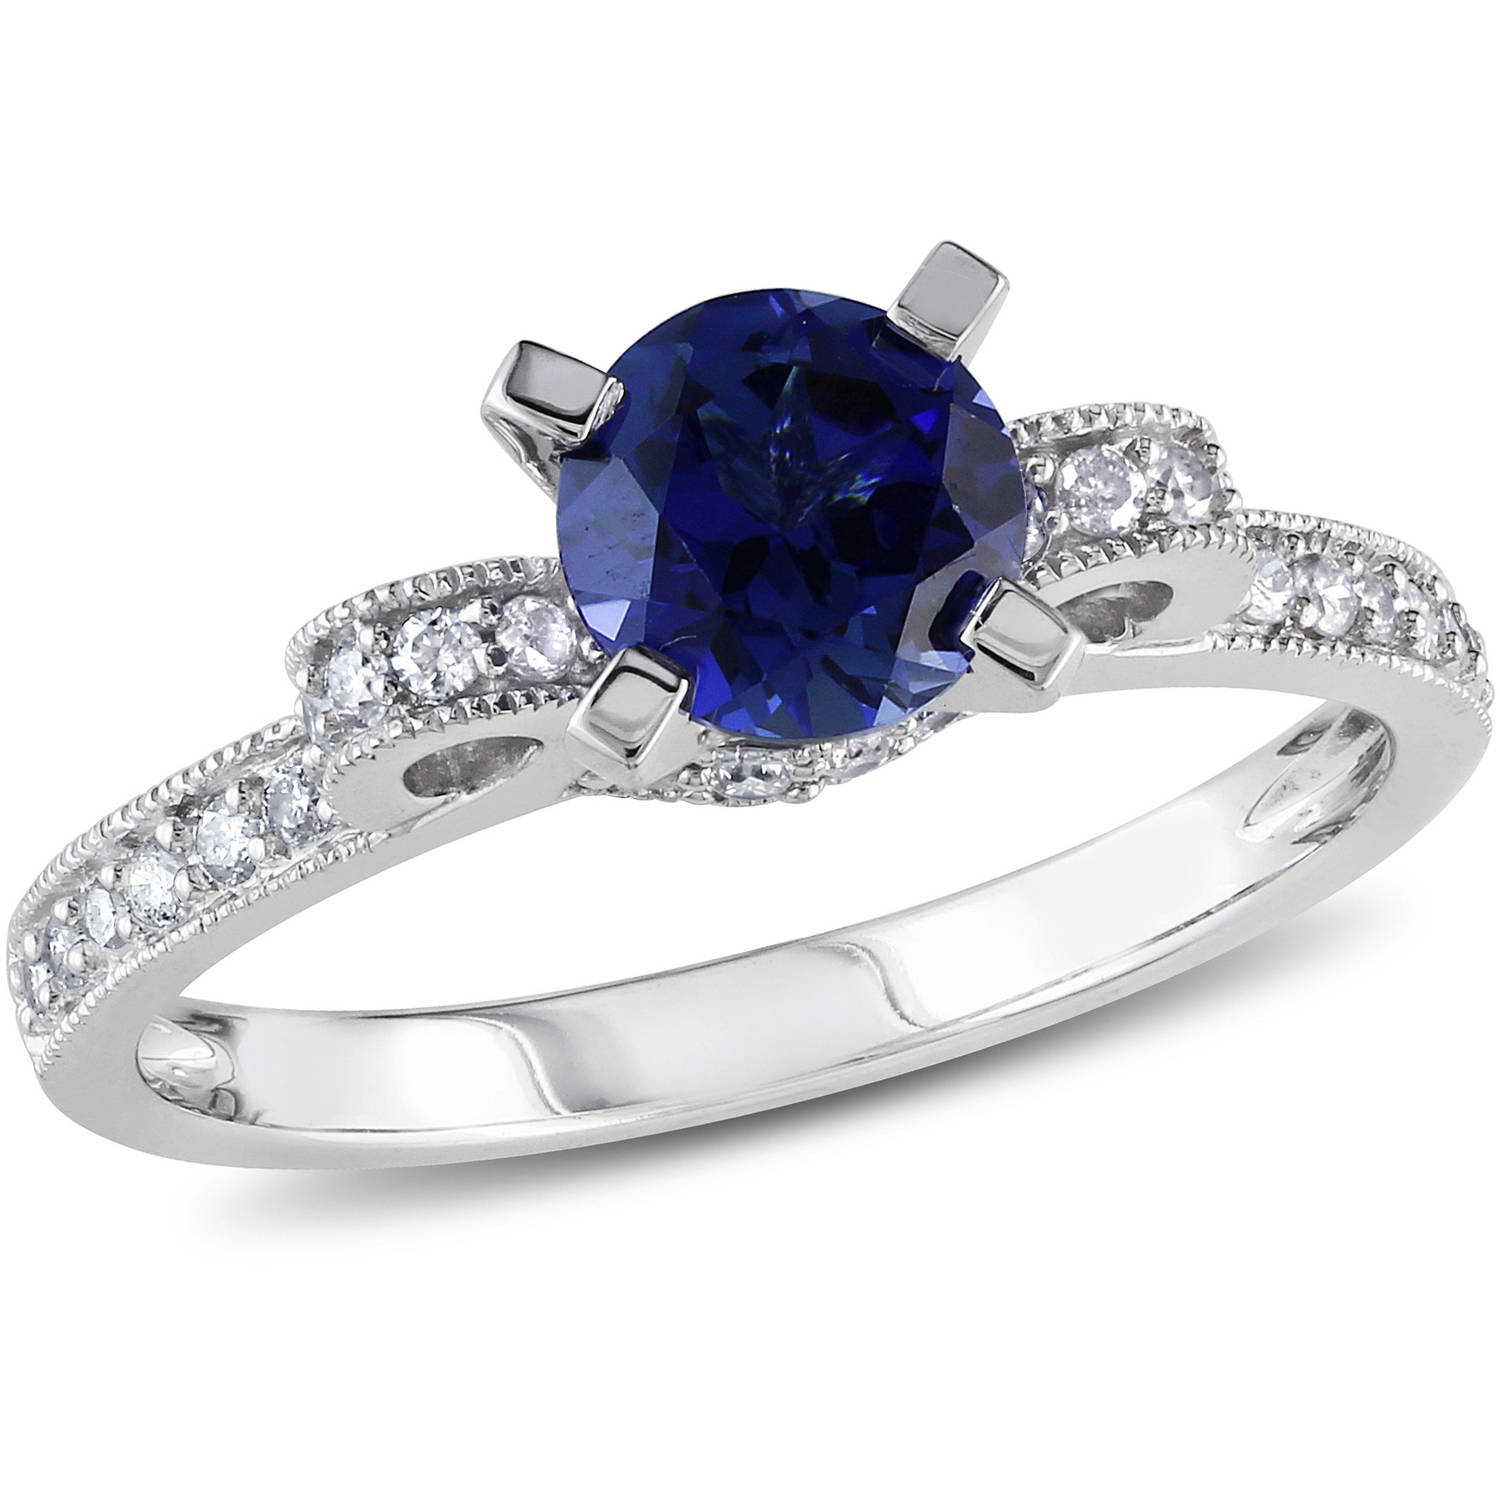 1 Carat T.G.W. Created Blue Sapphire and 1 4 Carat T.W. Diamond 10kt White Gold Engagement Ring by Delmar Manufacturing LLC